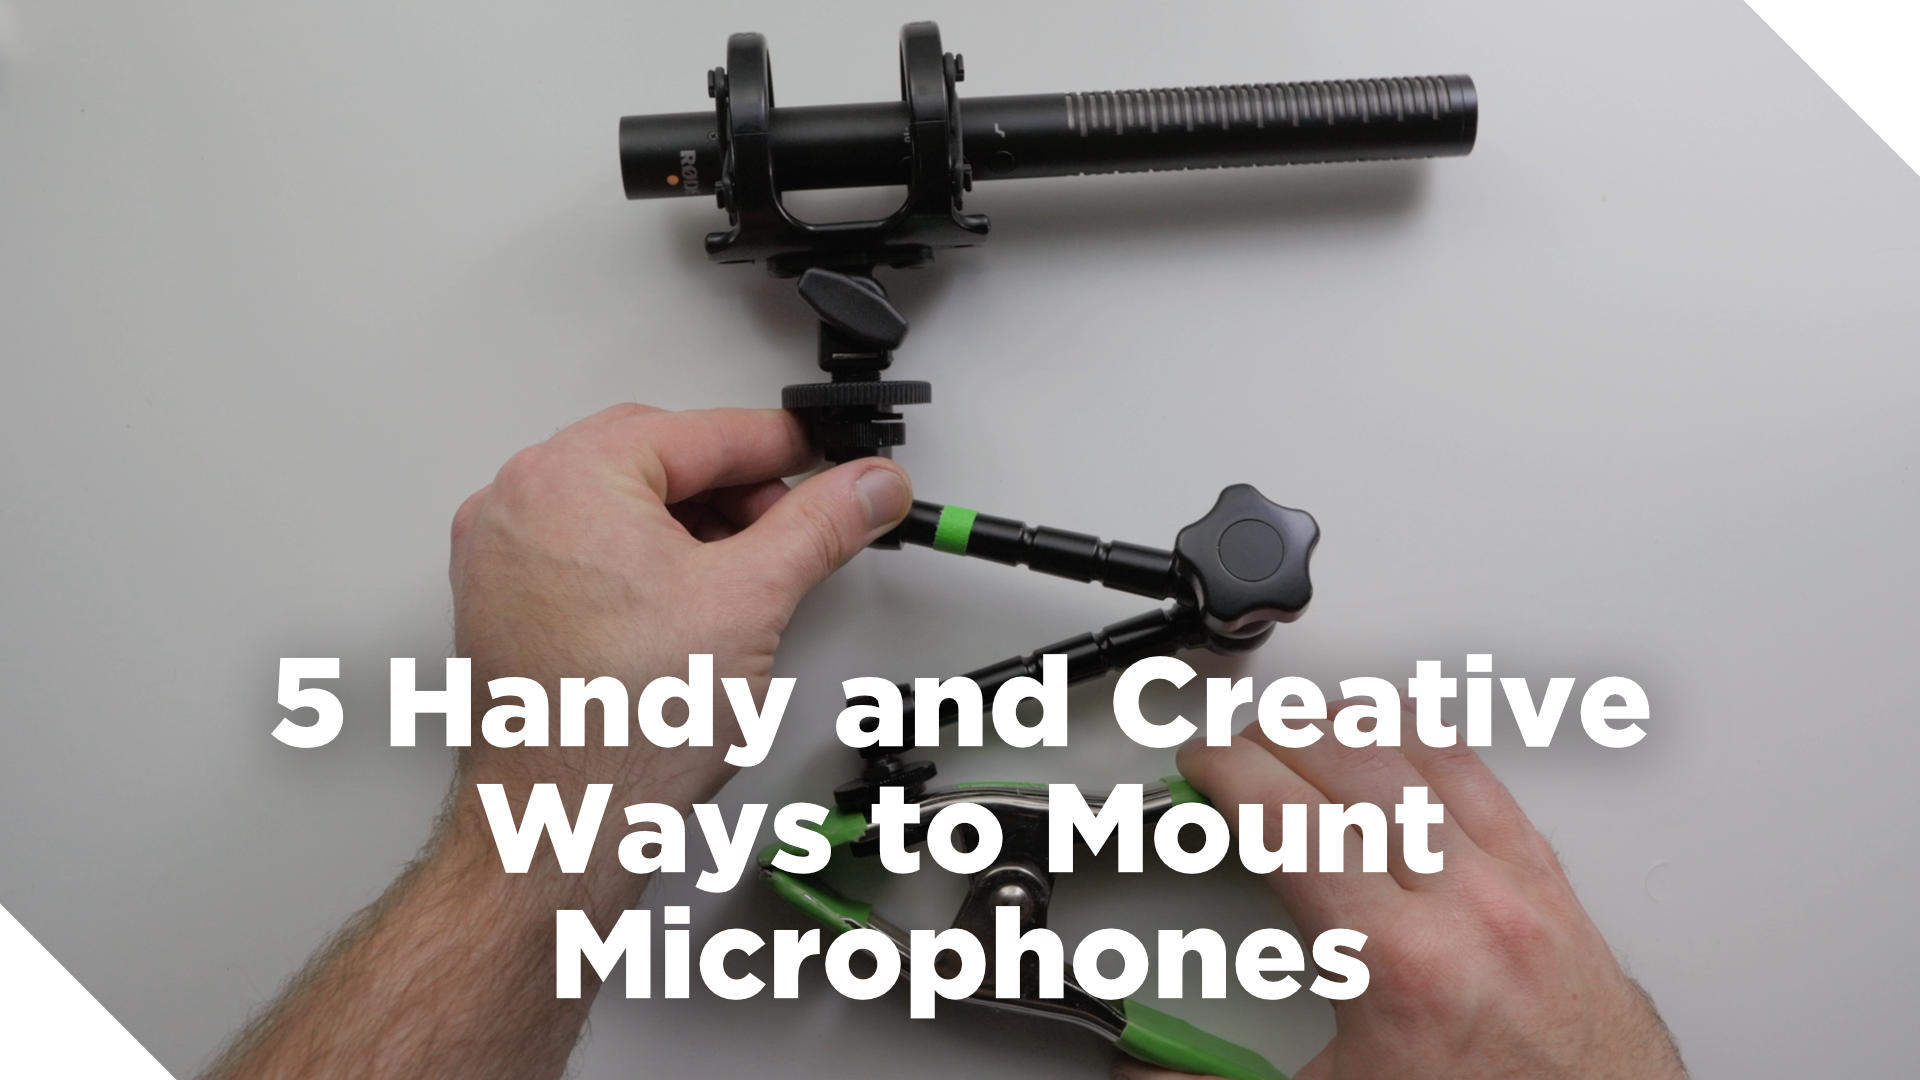 5 Handy and Creative Ways to Mount Microphones